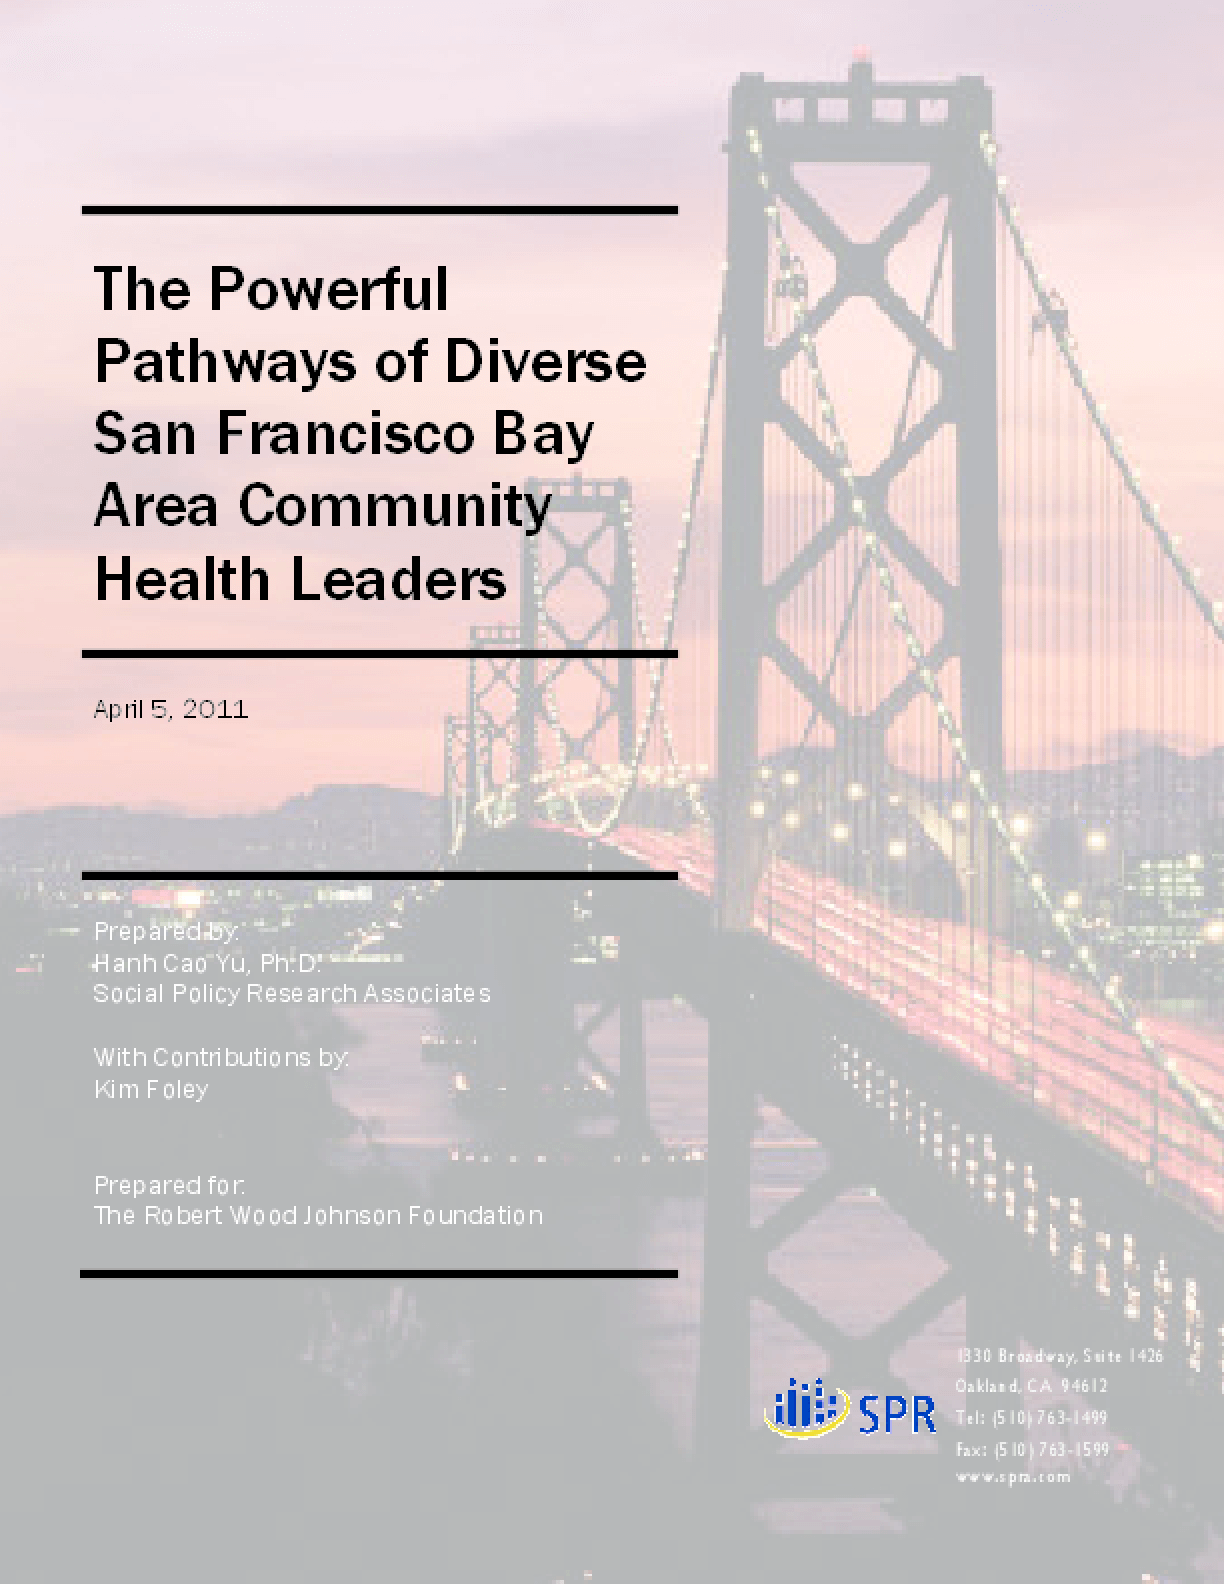 The Powerful Pathways of Diverse San Francisco Bay Area Community Health Leaders